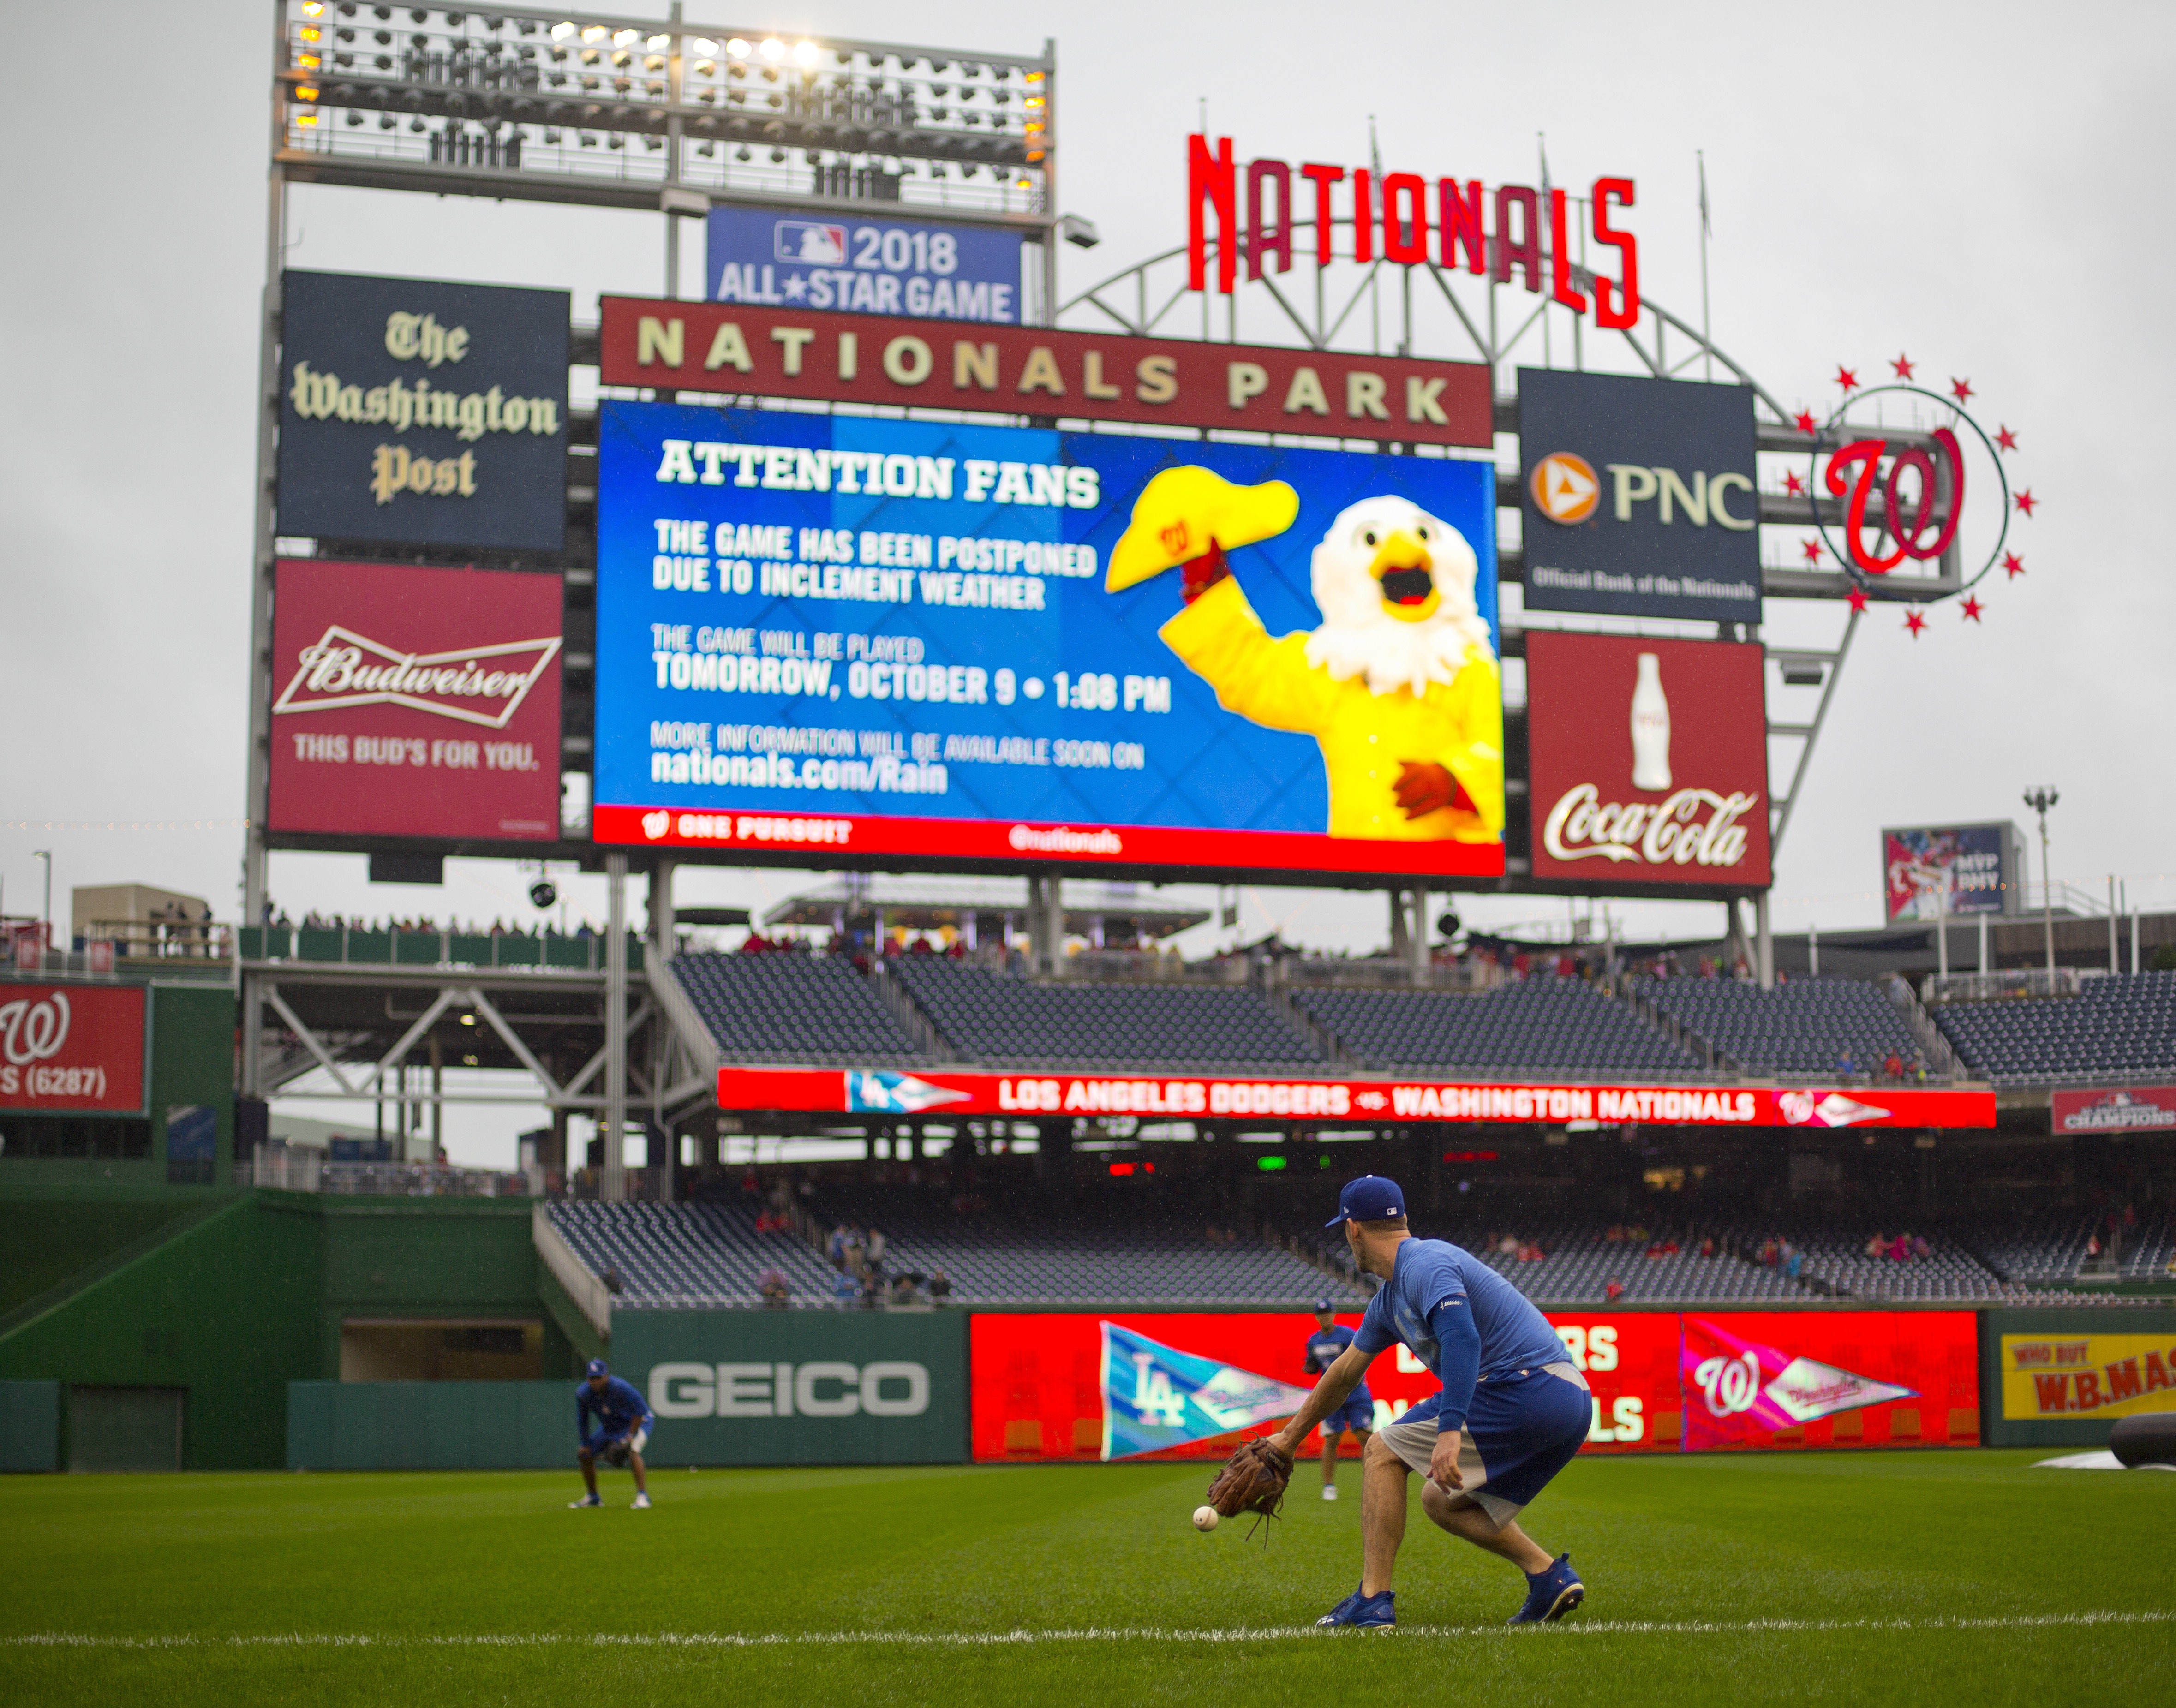 Los Angeles Dodgers relief pitcher Grant Dayton fields a ball as he workouts with teammates at Nationals Park, Saturday, Oct. 8, 2016, in Washington. Game 2 of baseball's National League Division Series between the Dodgers and Washington Nationals has bee